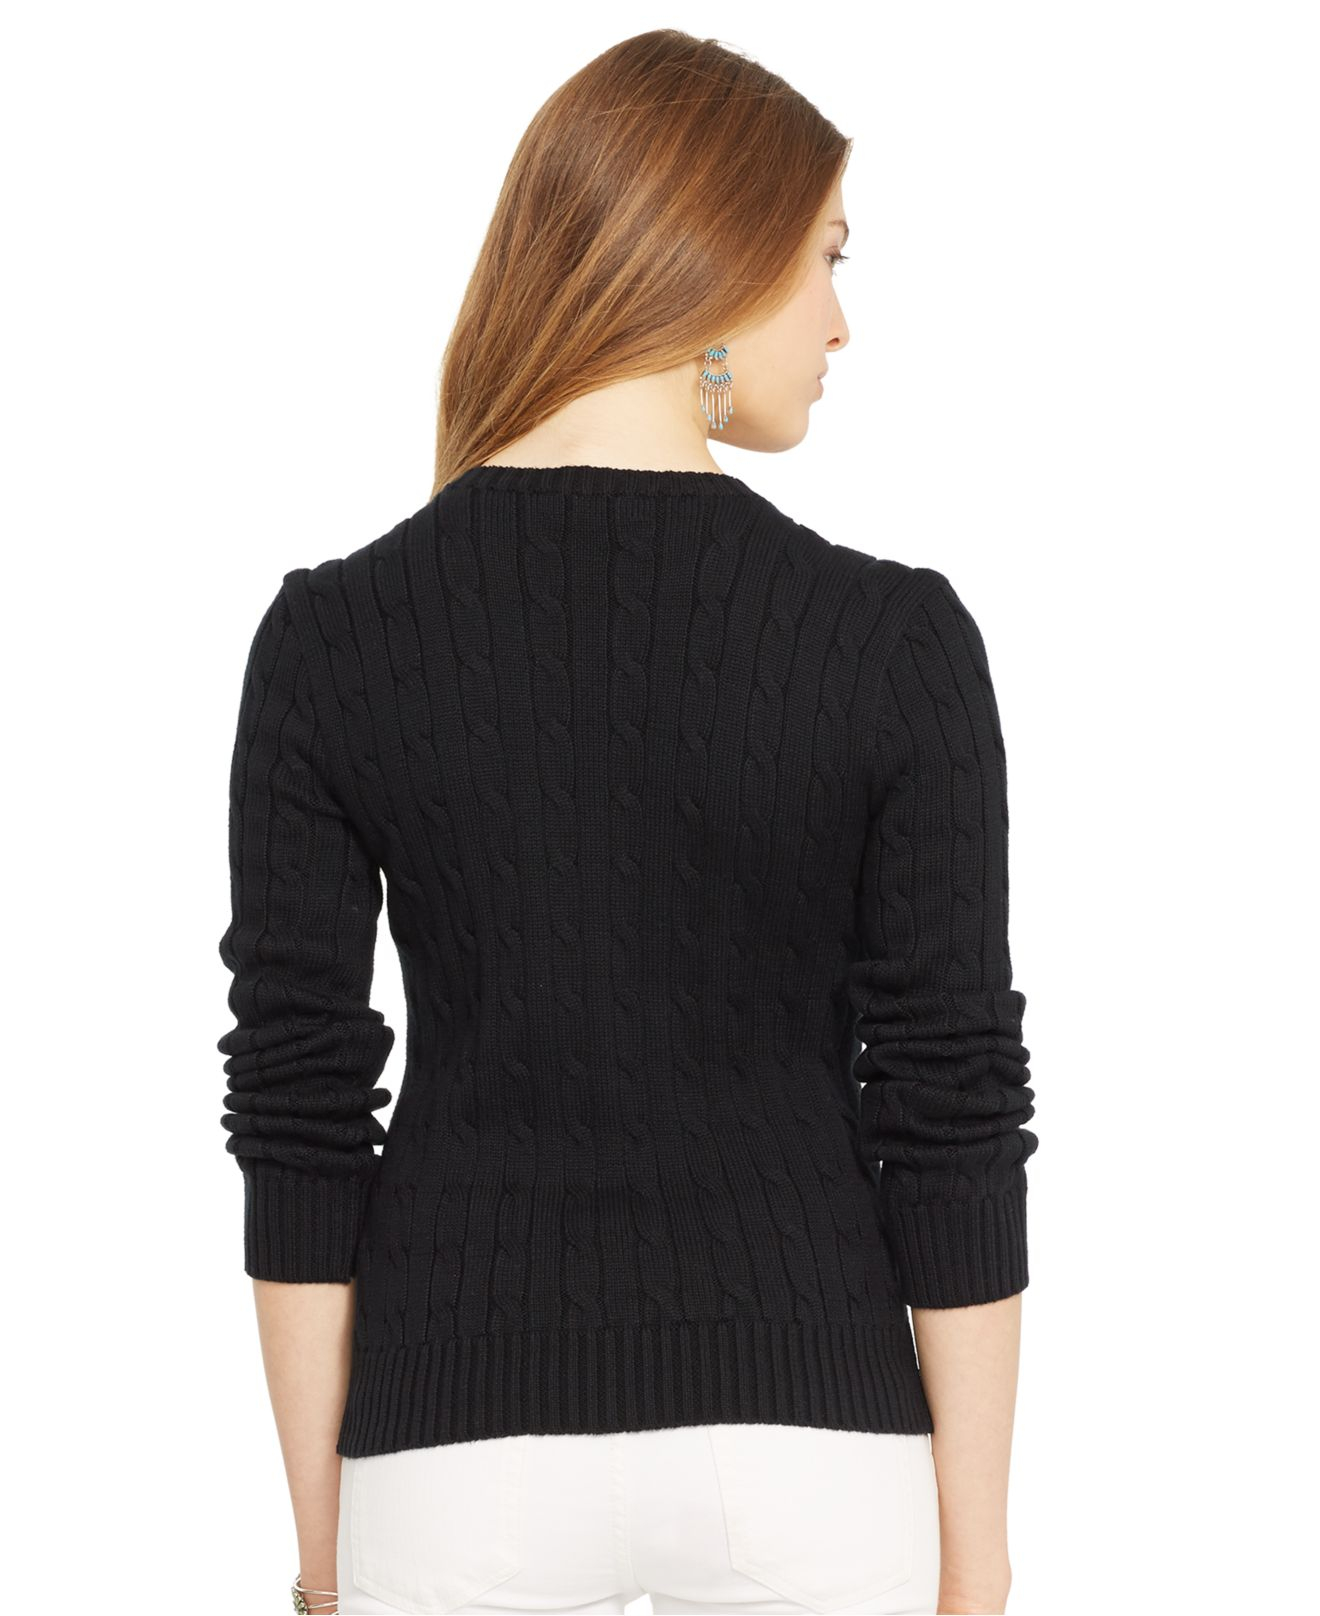 Polo ralph lauren Crew-Neck Cable-Knit Sweater in Black | Lyst